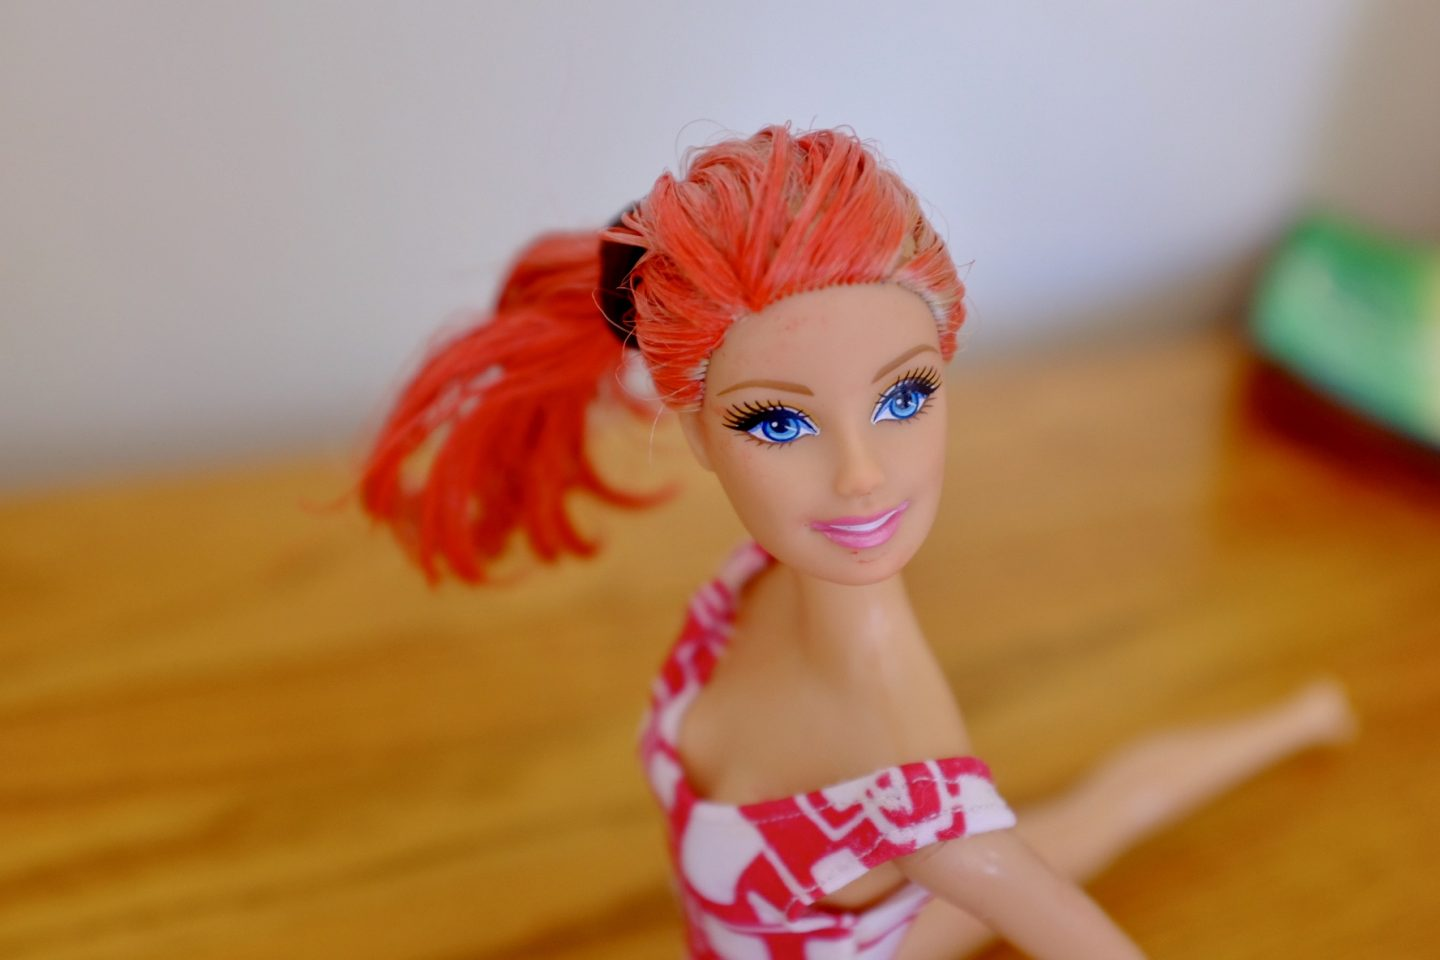 Dye a Barbie's Hair with Paint Sticks – Easy Fun for Kids